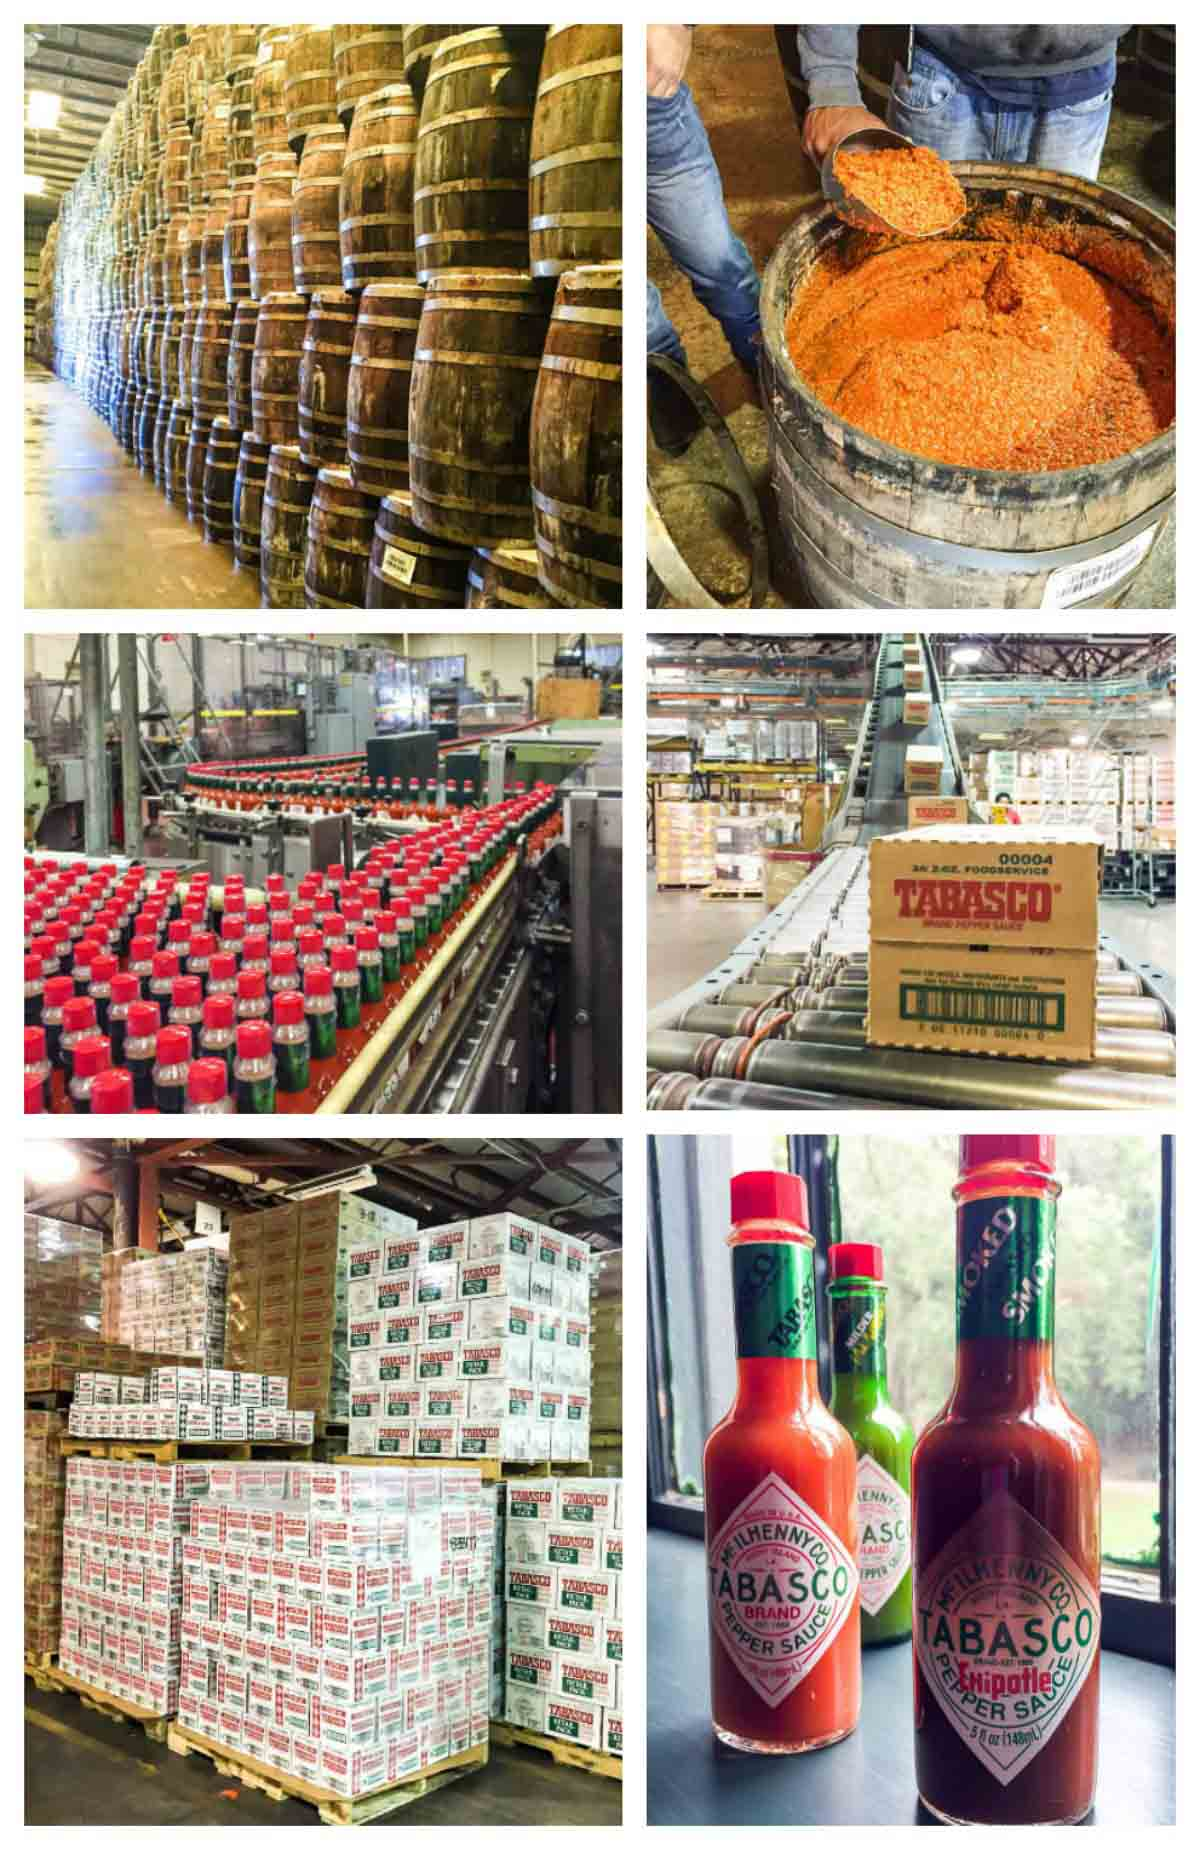 Tabasco Factory and a recipe for shrimp marinade that uses the famous sauce! @wellplated